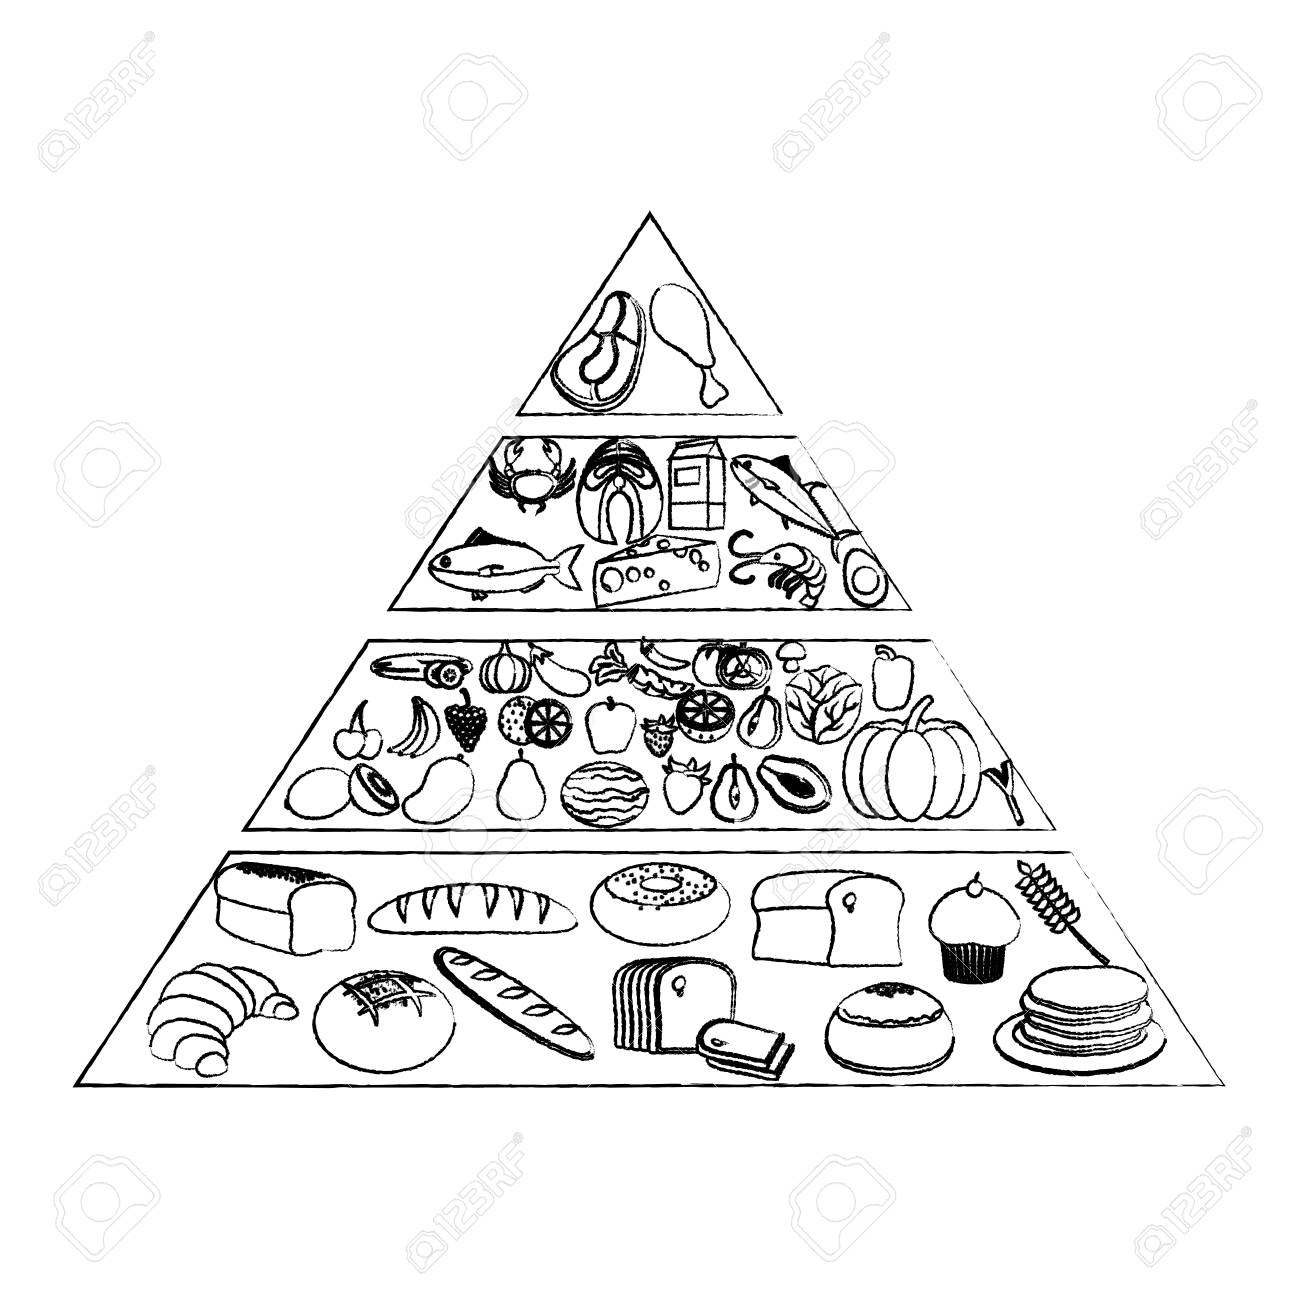 grunge nutritional food pyramid diet products vector illustration.